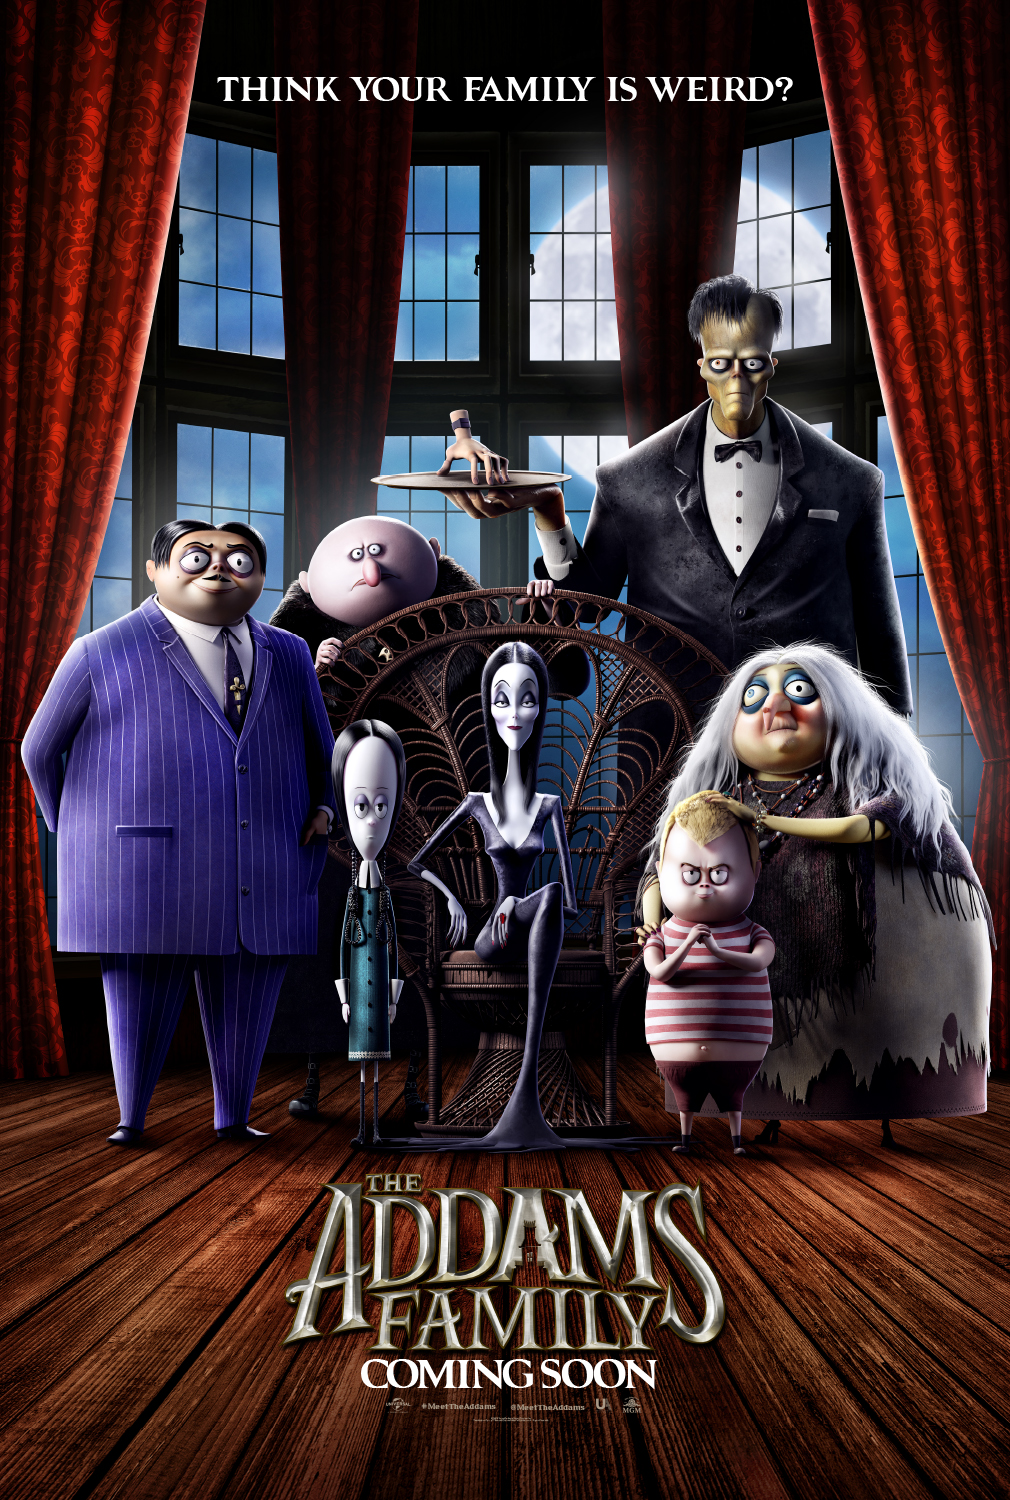 WATCH: The trailer for the new 'The Addams Family' is here!